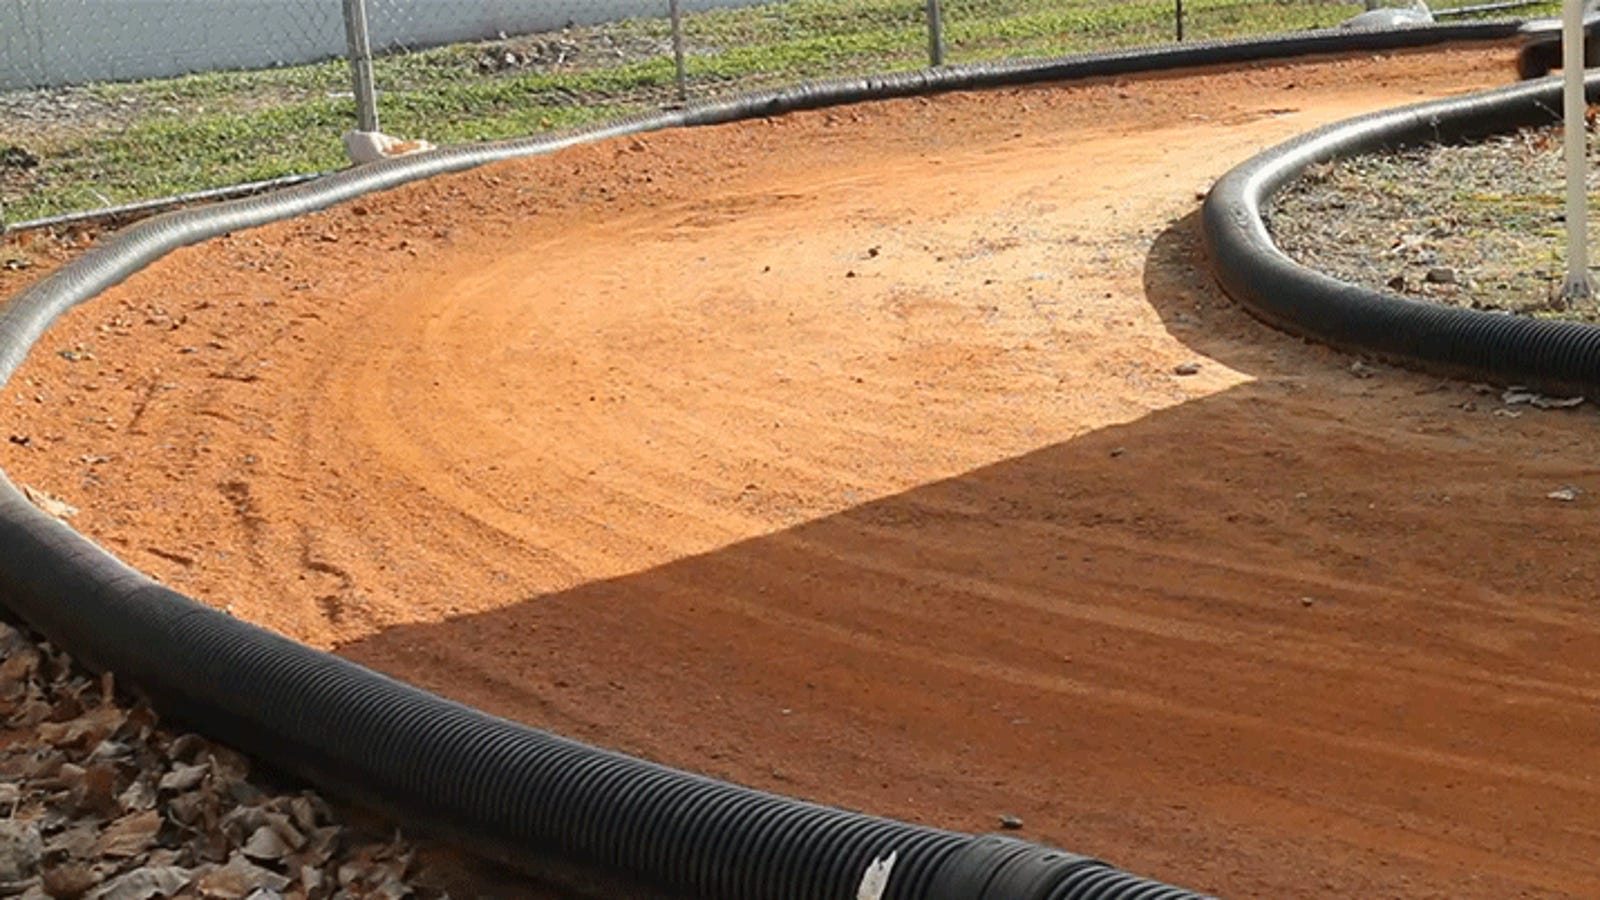 RC Trucks Learning to Drift at High Speeds Will Make Self